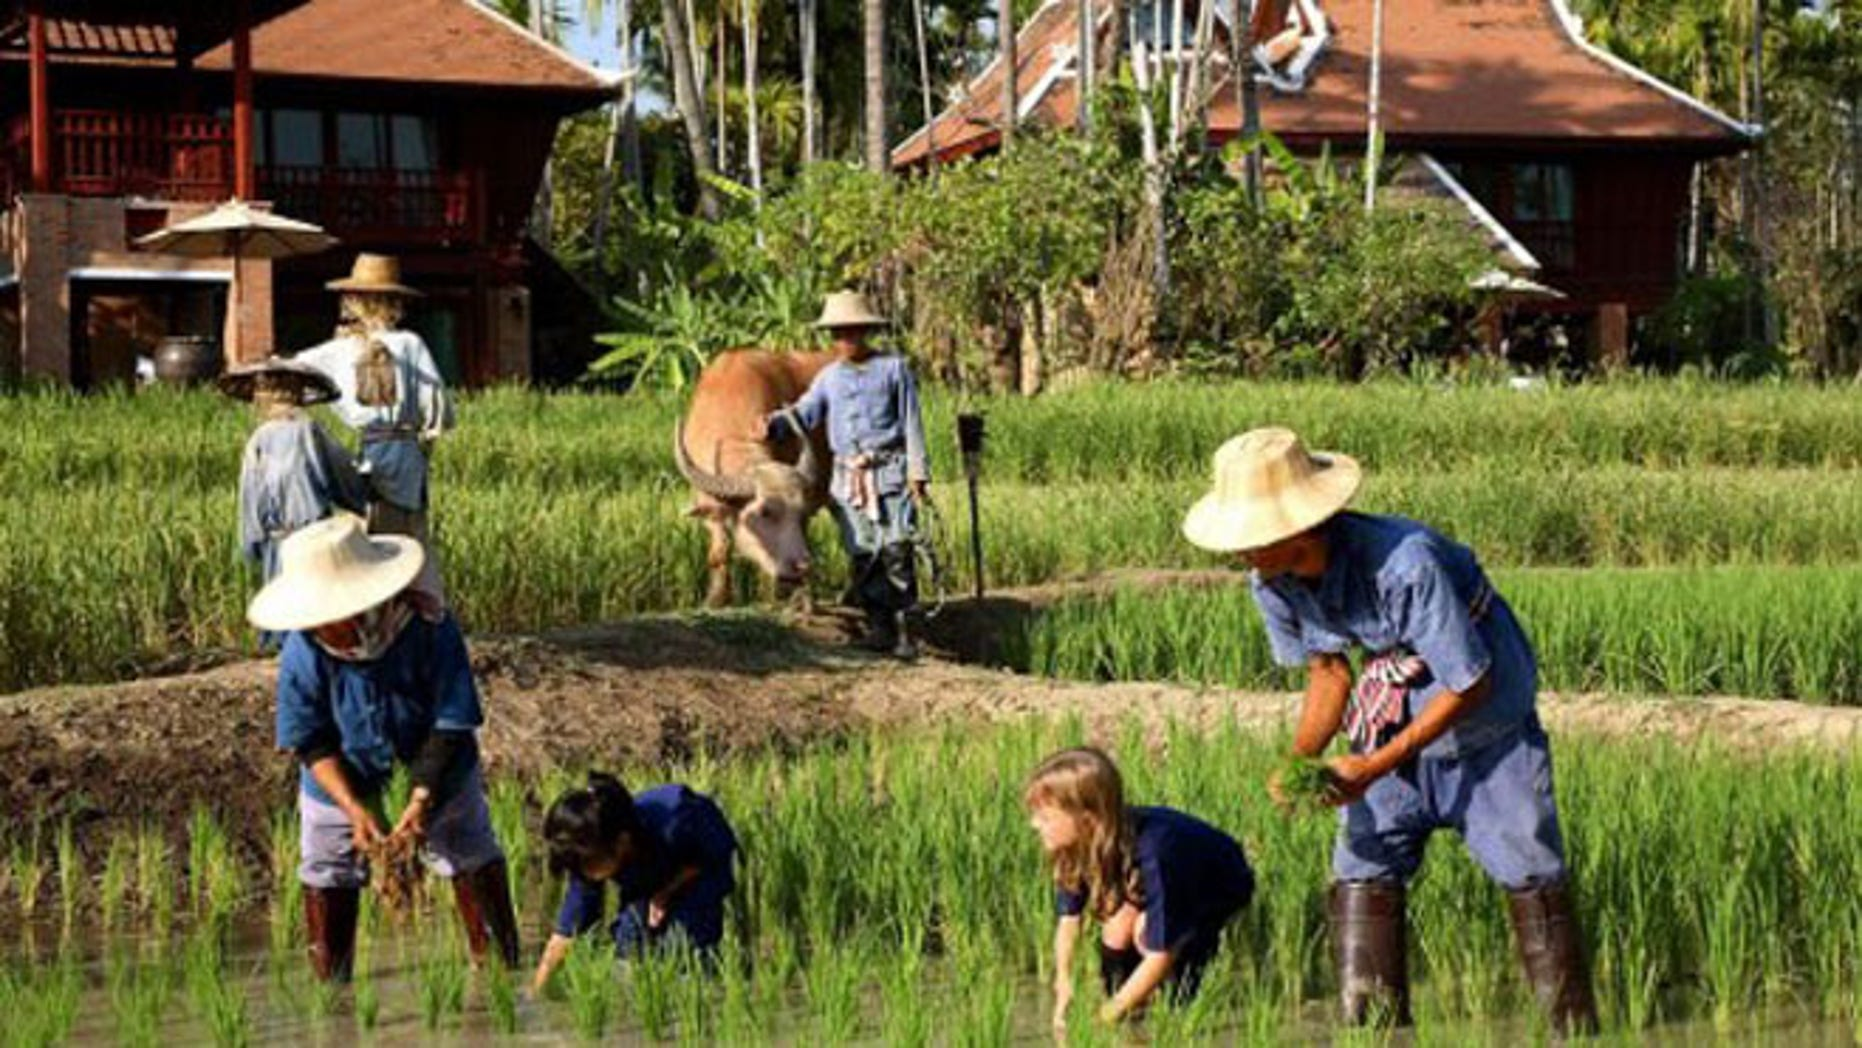 The kids' club at 2013 Gold List property, Chiang Mai's Mandarin Oriental Dhara Dhevi ups its game (and puts other clubs to shame) with activities like rice planting, water buffalo riding, and muay thai (kickboxing).